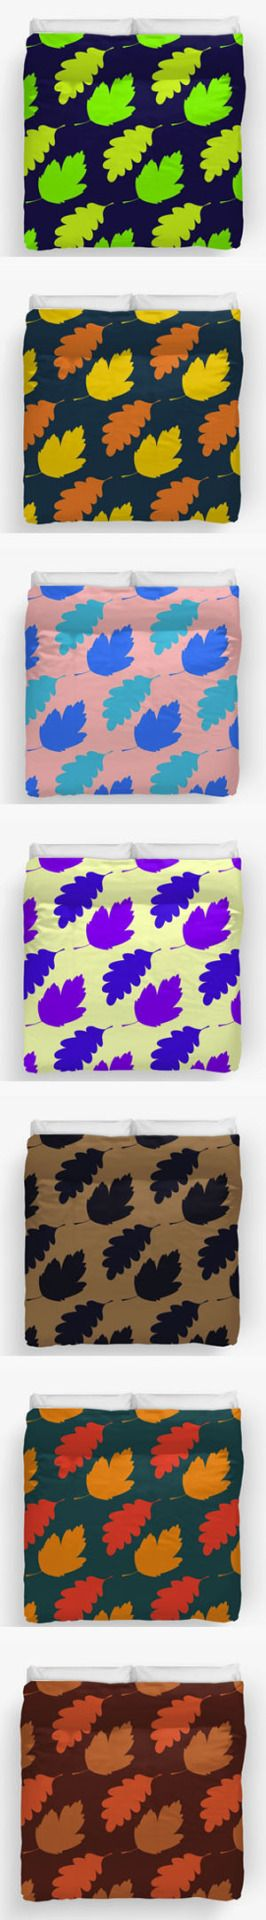 Colorful and warm Autumn Leaves Duvet Covers by Steel Graphics.